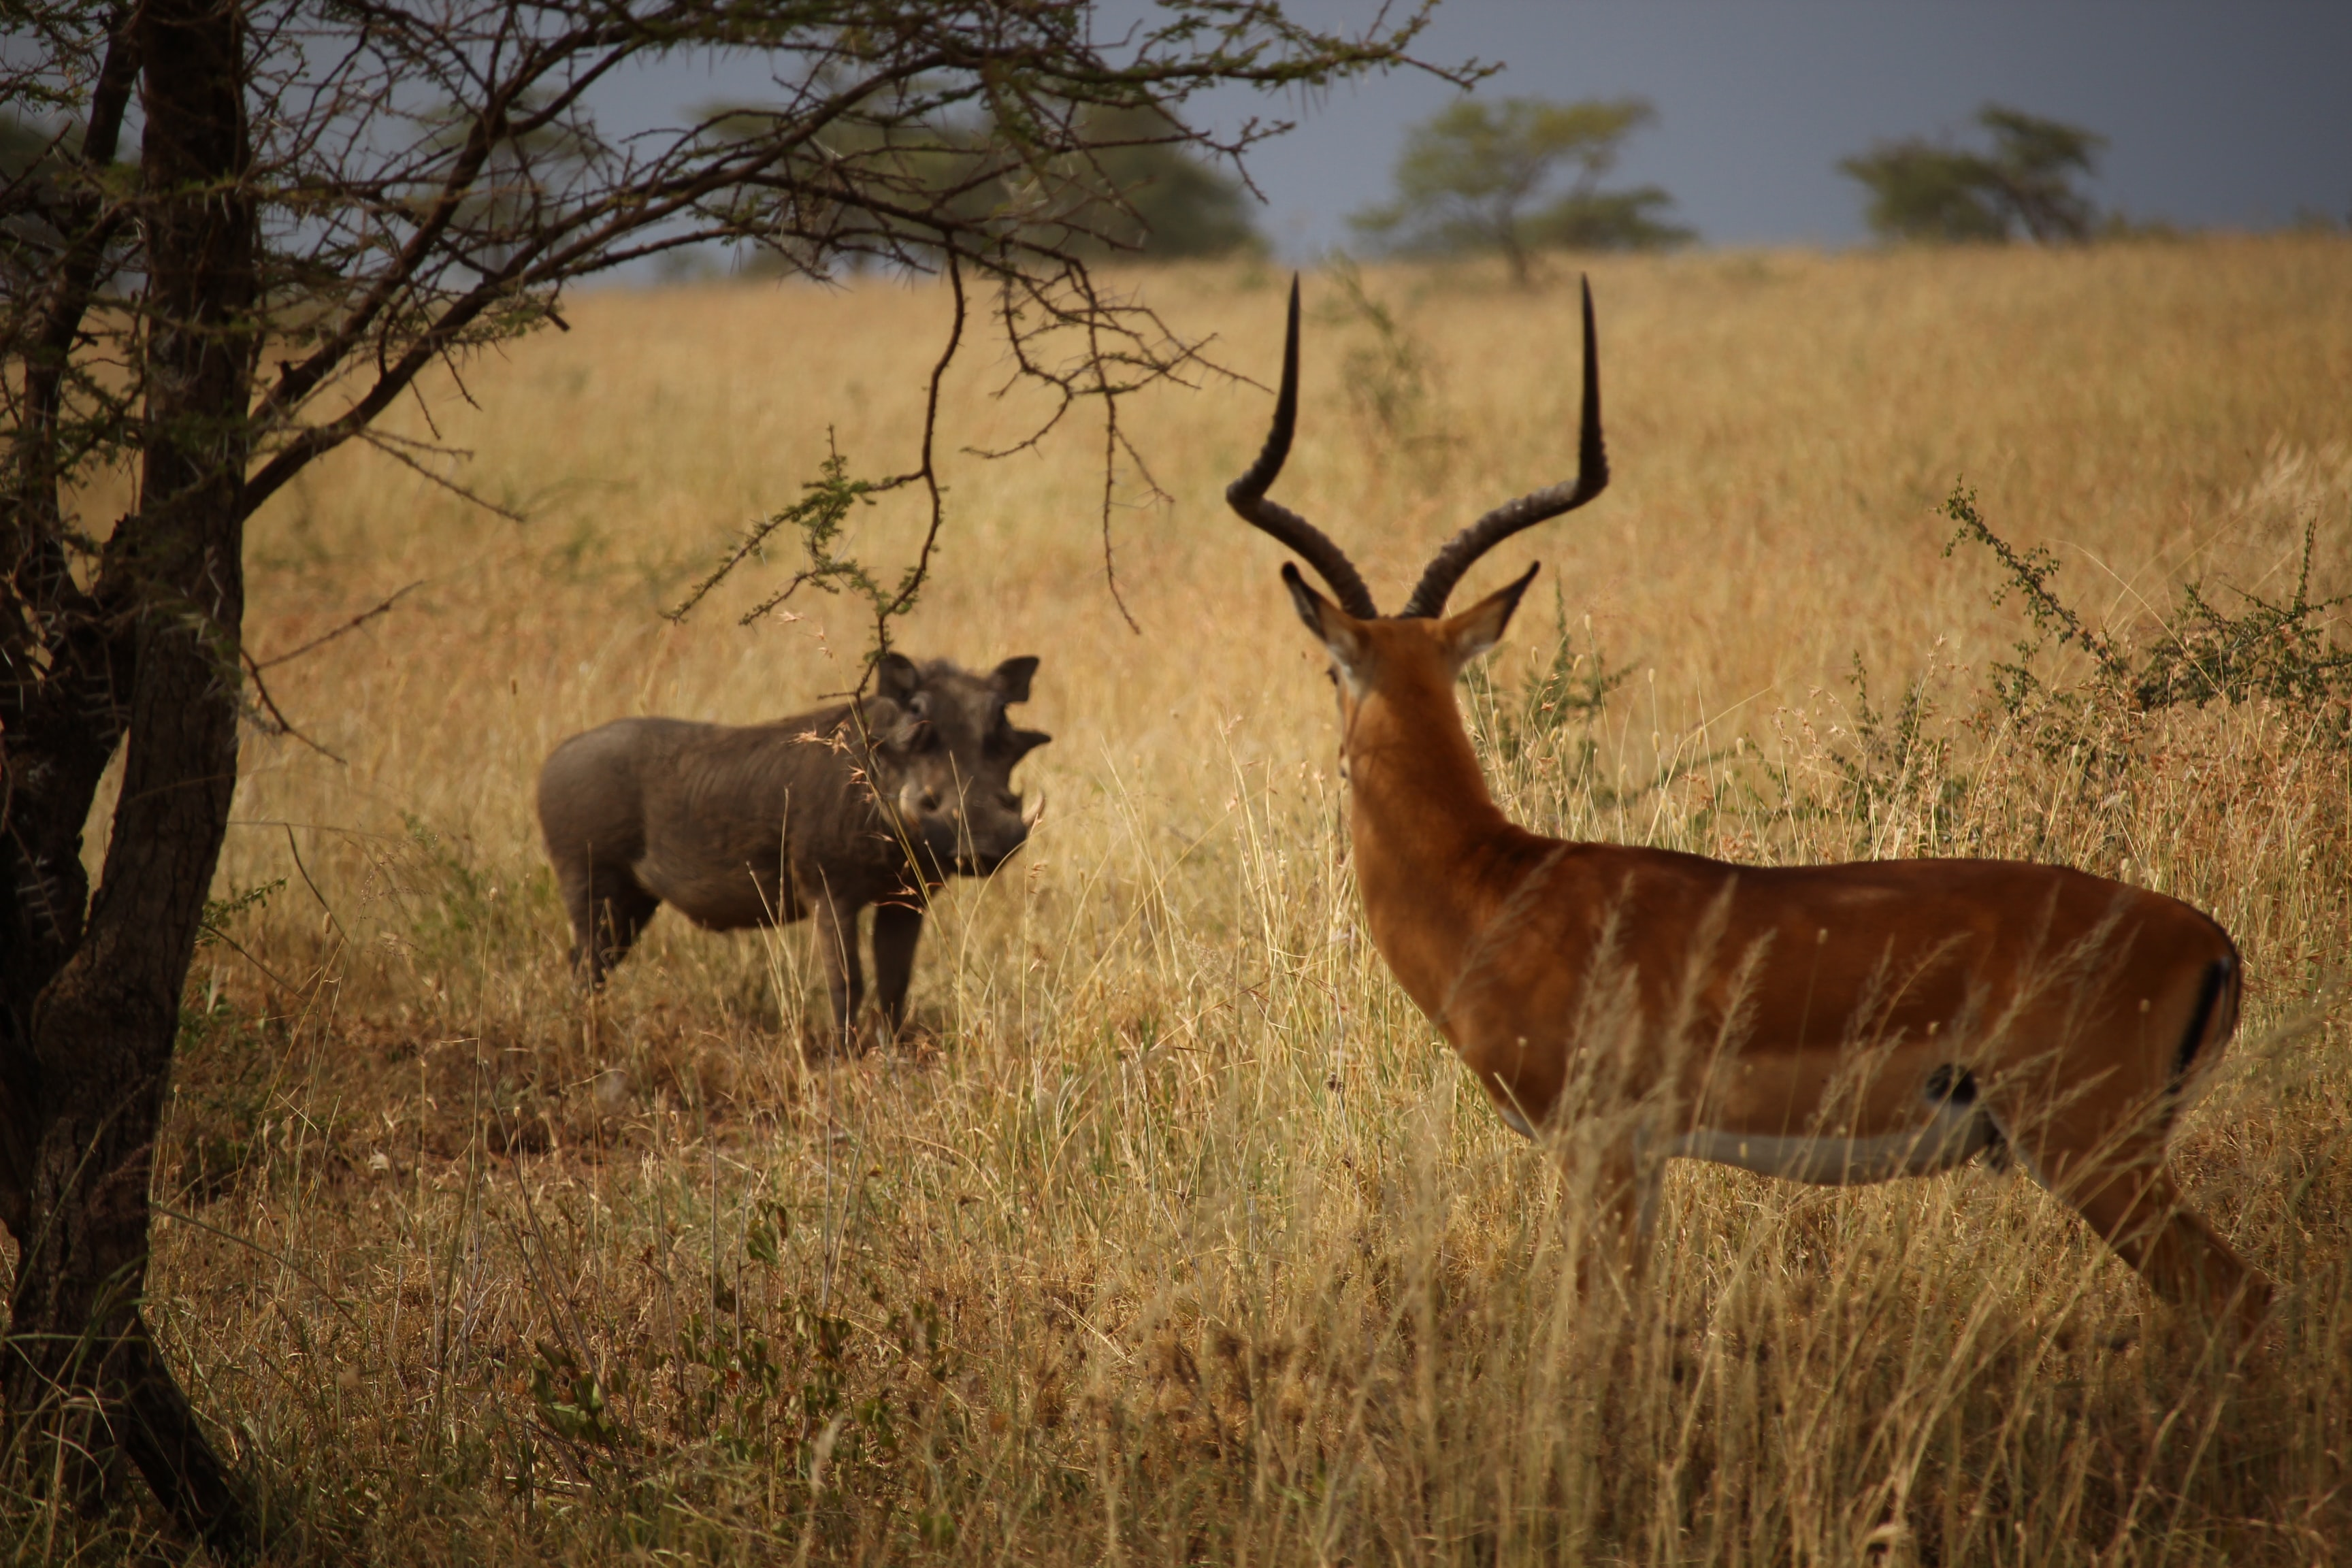 hippopotamus and deer staring at each other